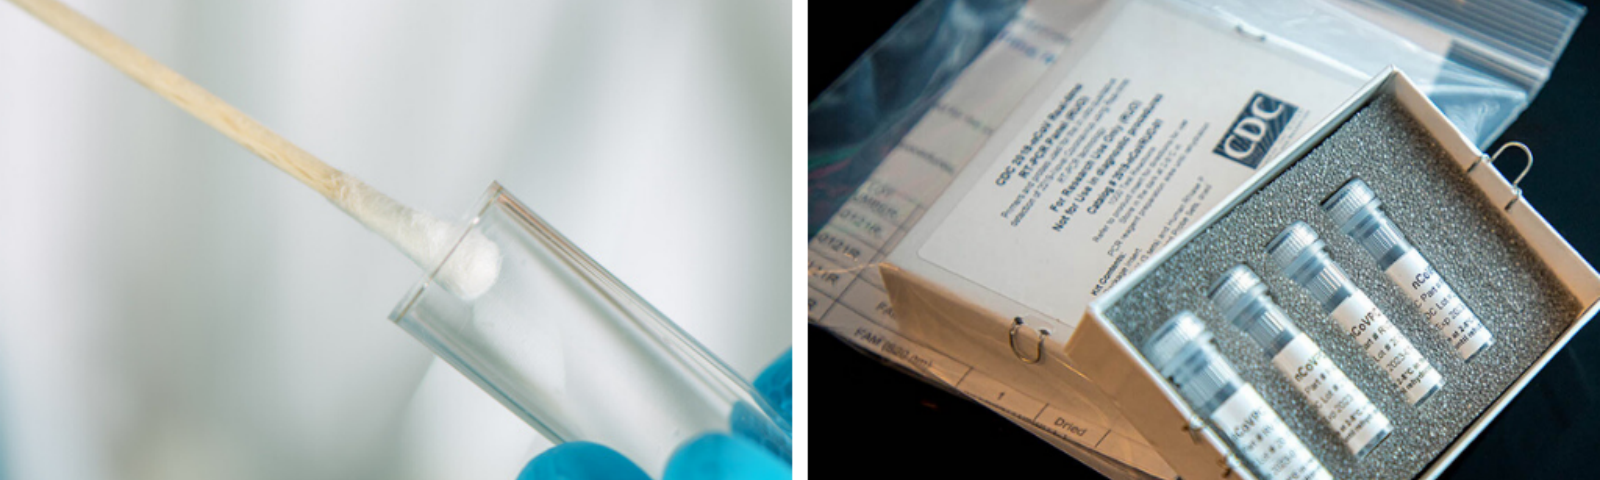 An image of a cotton swab in a test tube on the left and a CDC COVID-19 diagnostic panel on the right